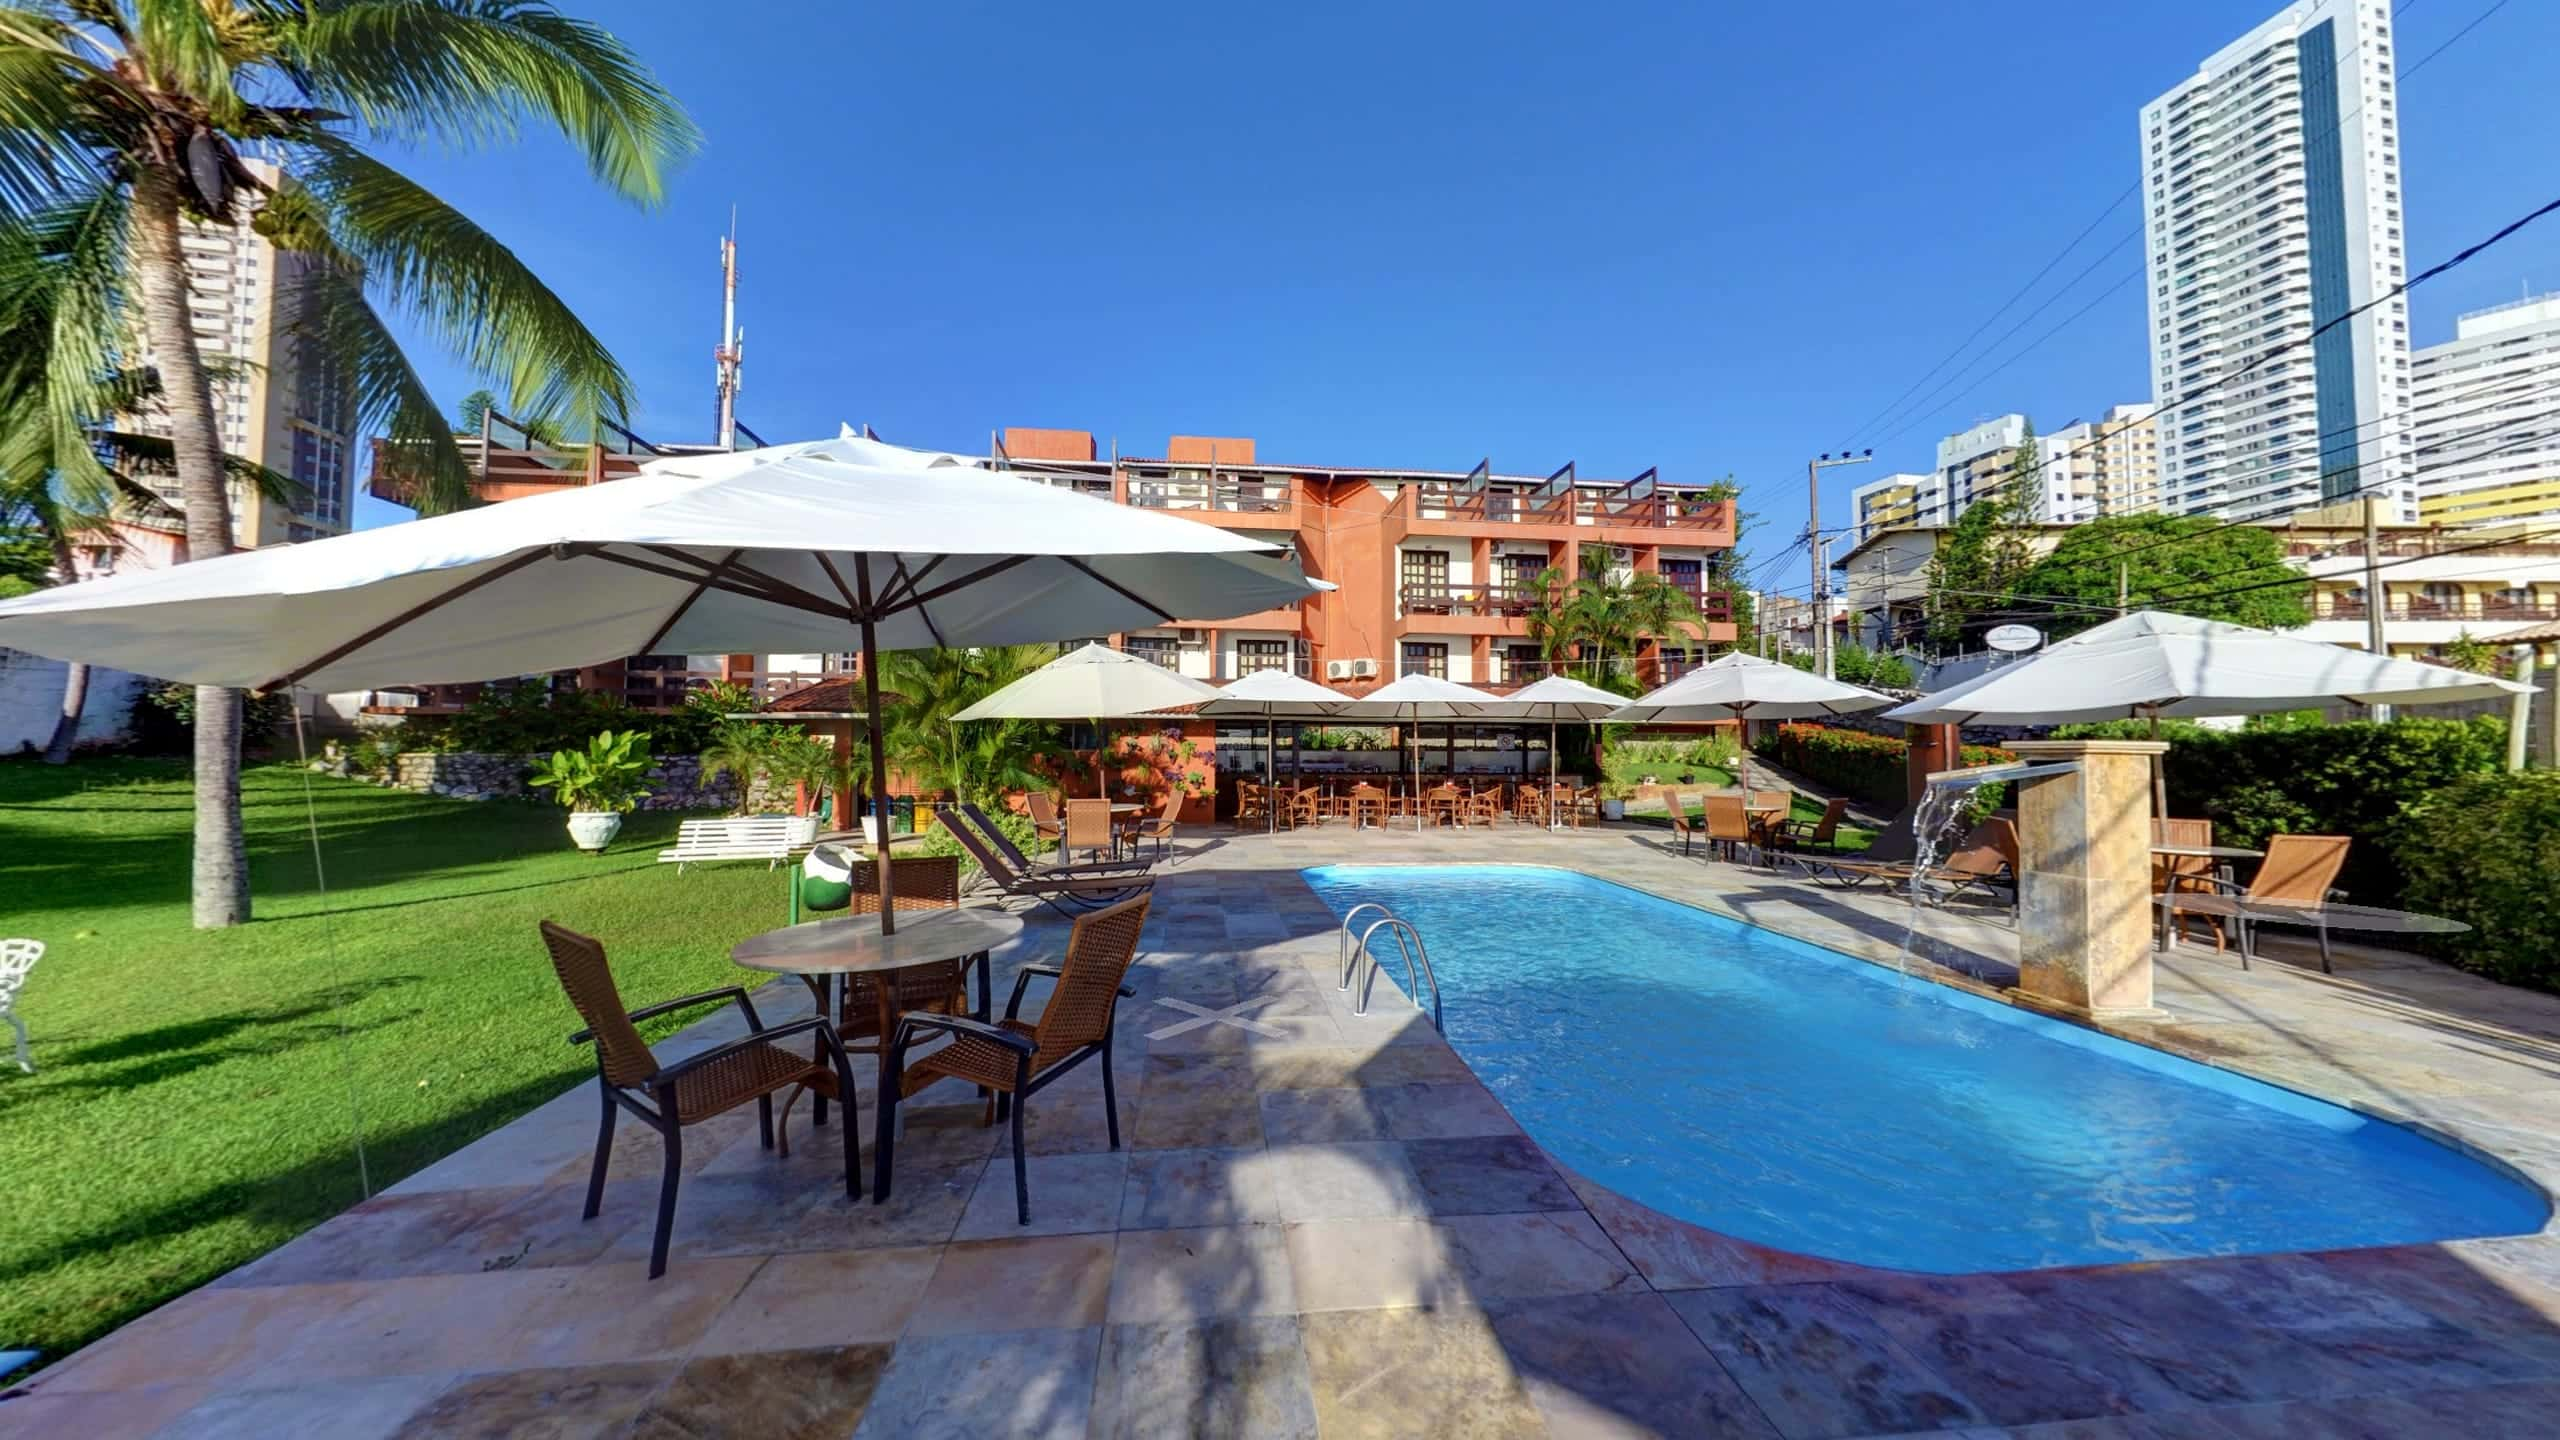 Street View Trusted do Atol das Rocas Praia Hotel